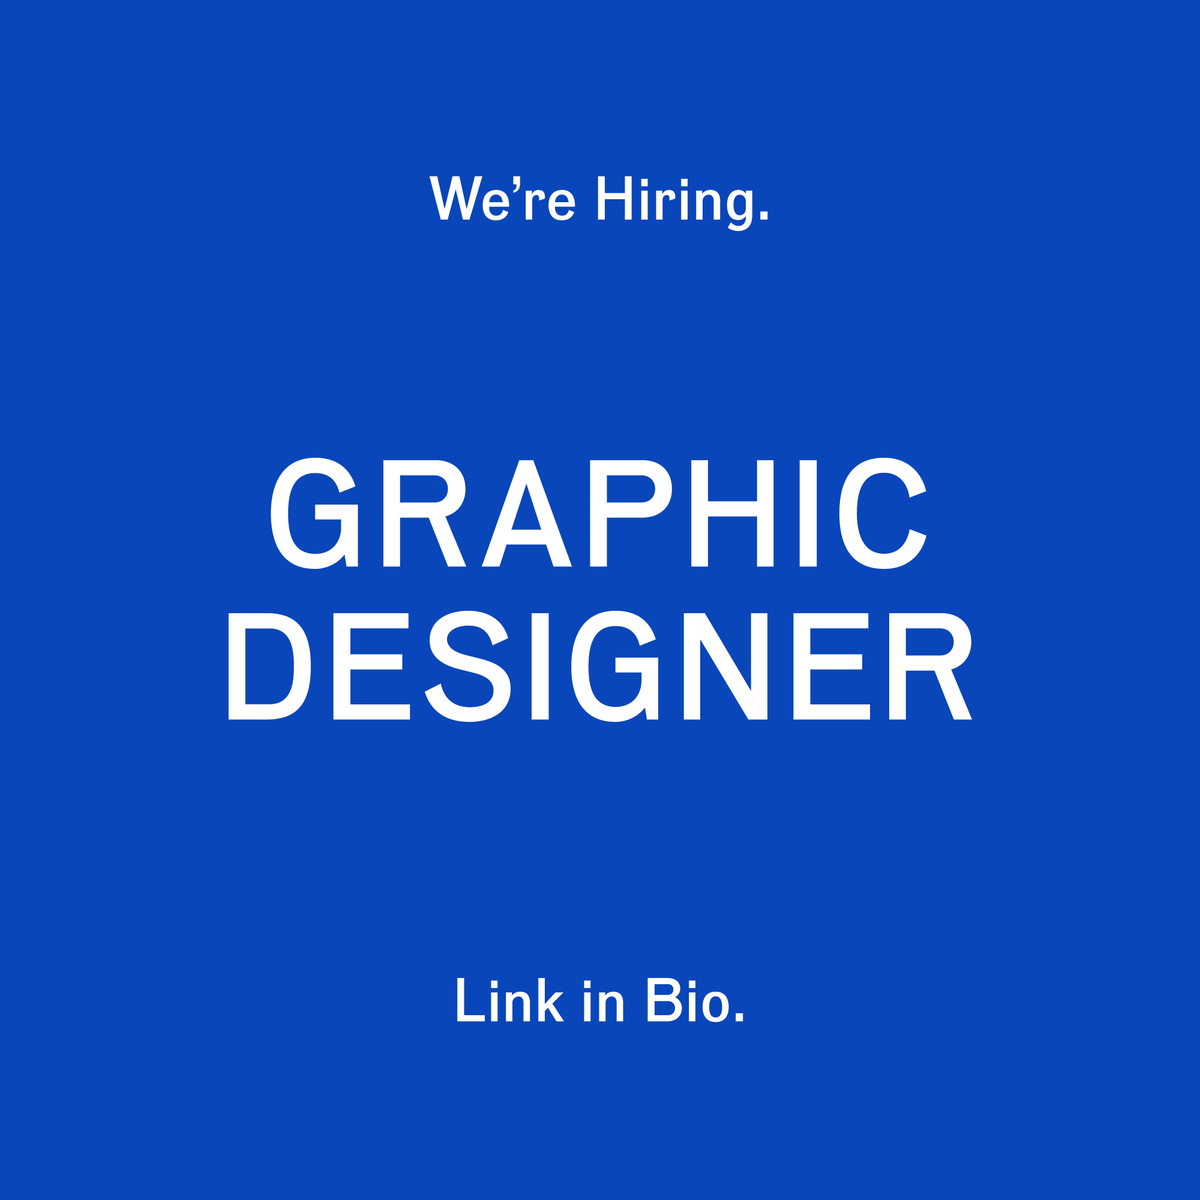 Still looking for a Mid-Sr level Graphic Designer to join our team in Nashville. Interested? Link in bio.